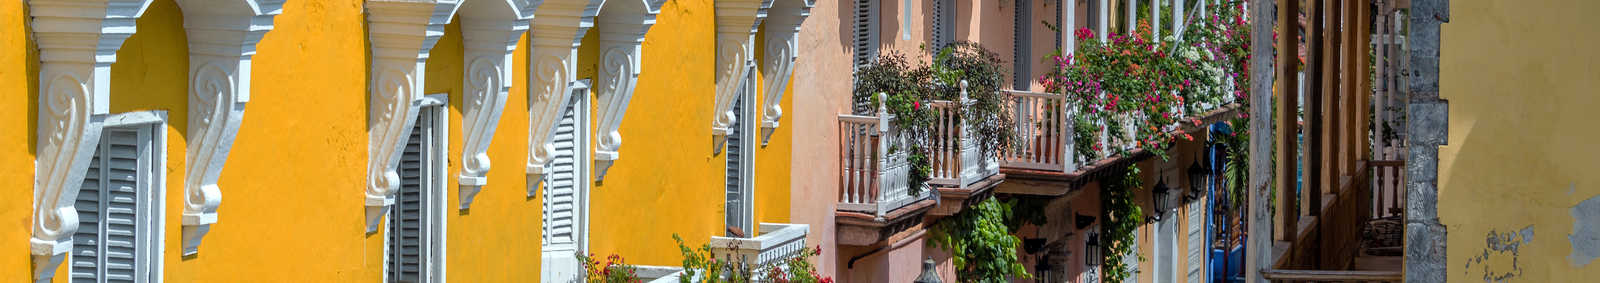 Colonial buildings and balconies in the historic center of Cartagena, Colombia